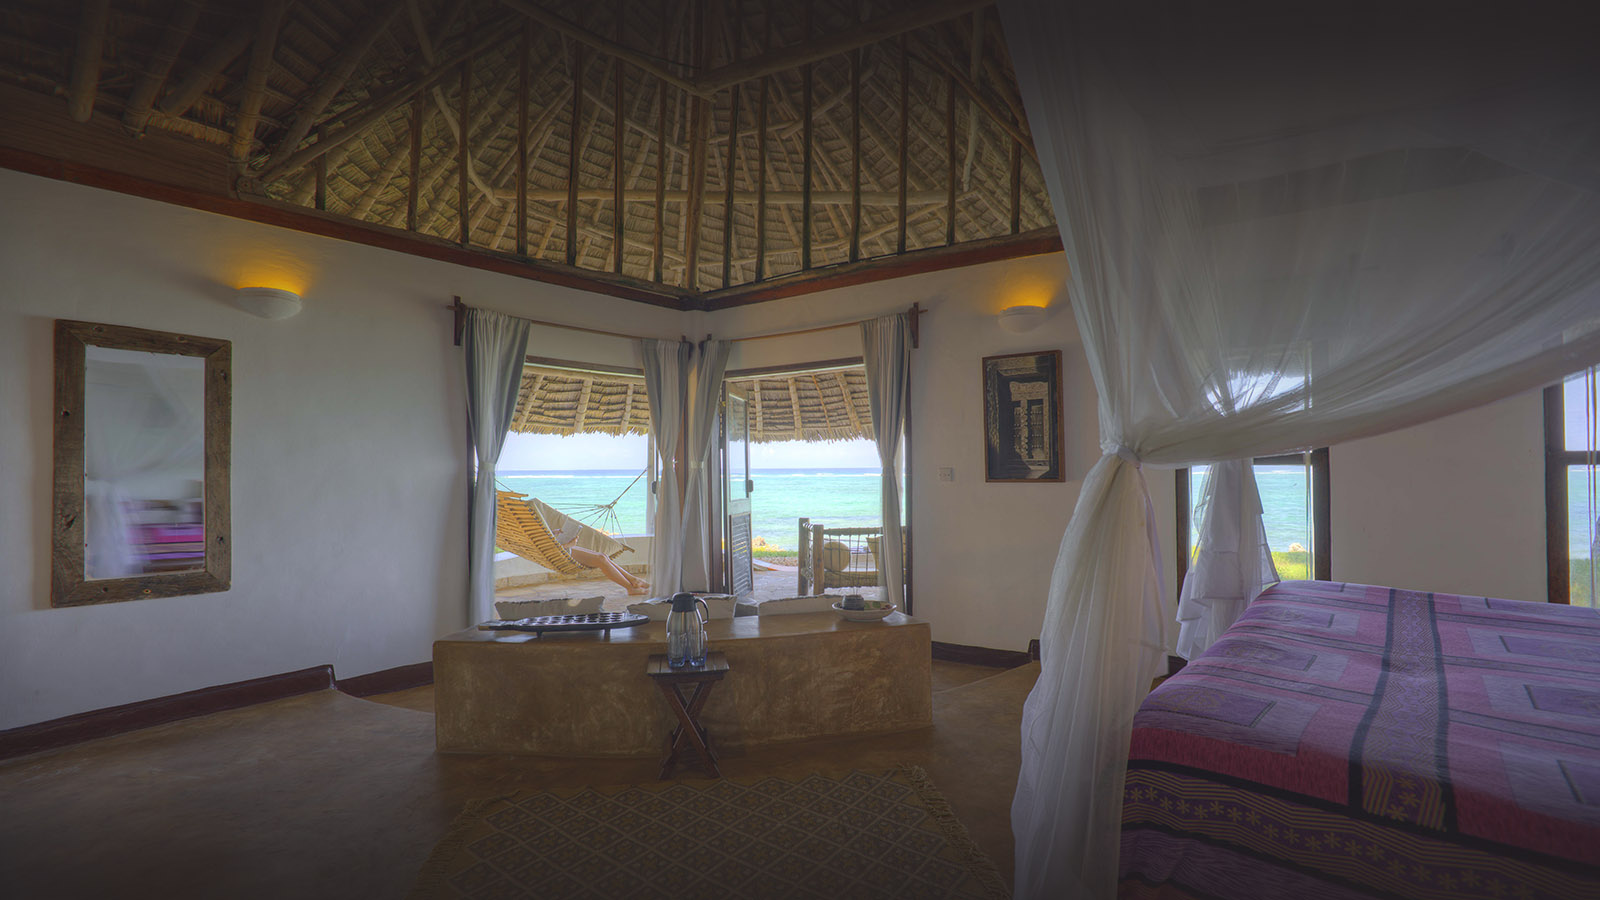 matemwe lodge tanzania-lodges-zanzibar-matemwe-village-zambia-in-style-stunning-retreat-island-vibe-room-view